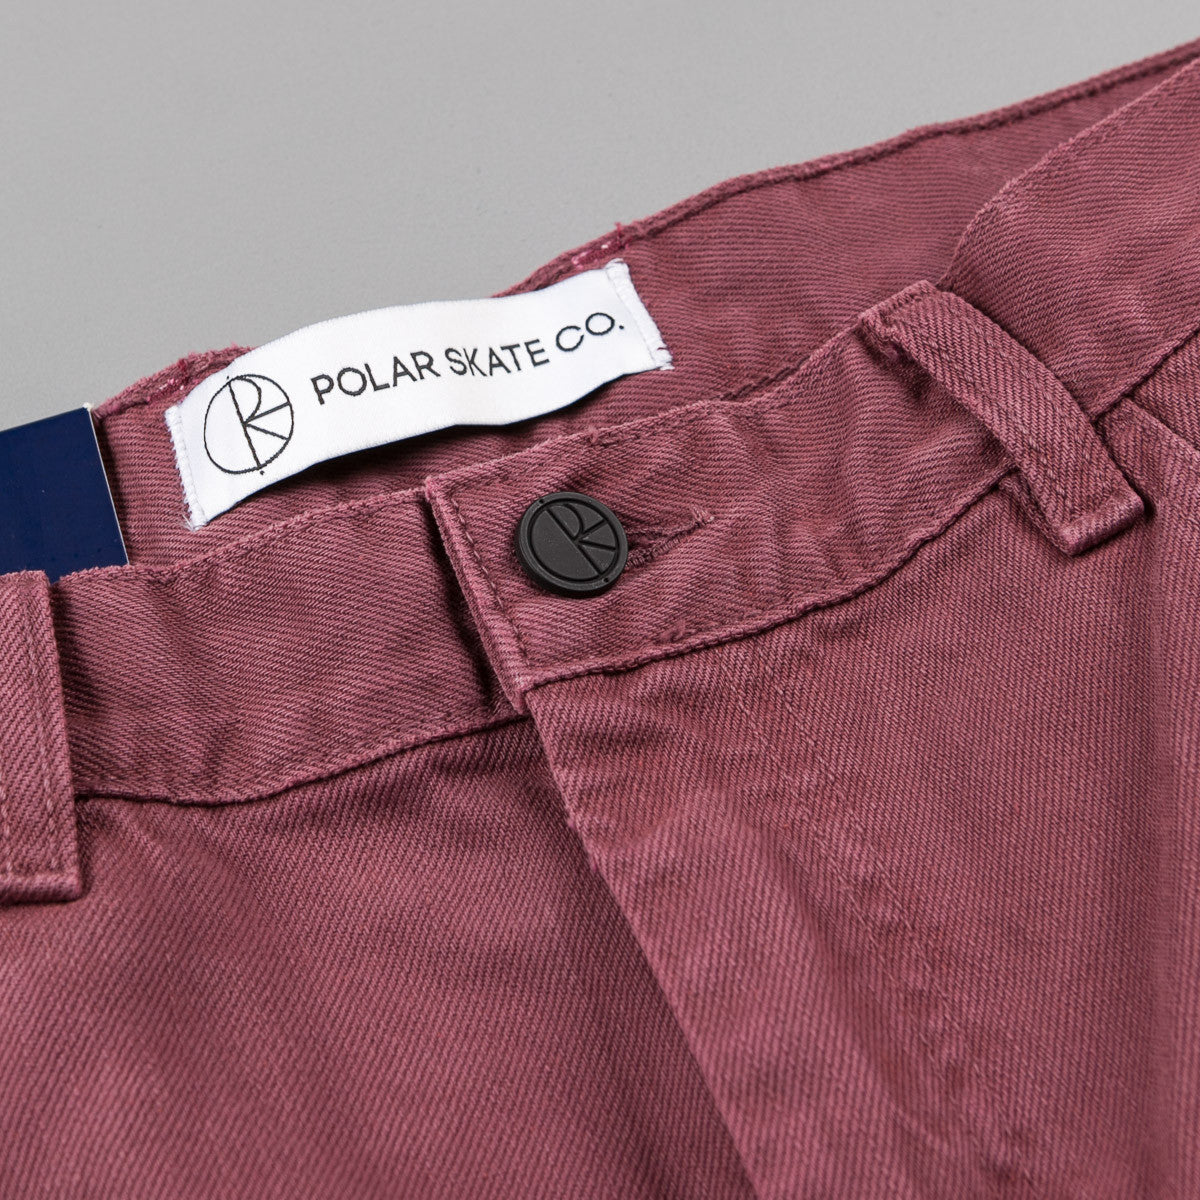 Polar 90's Jeans - Red